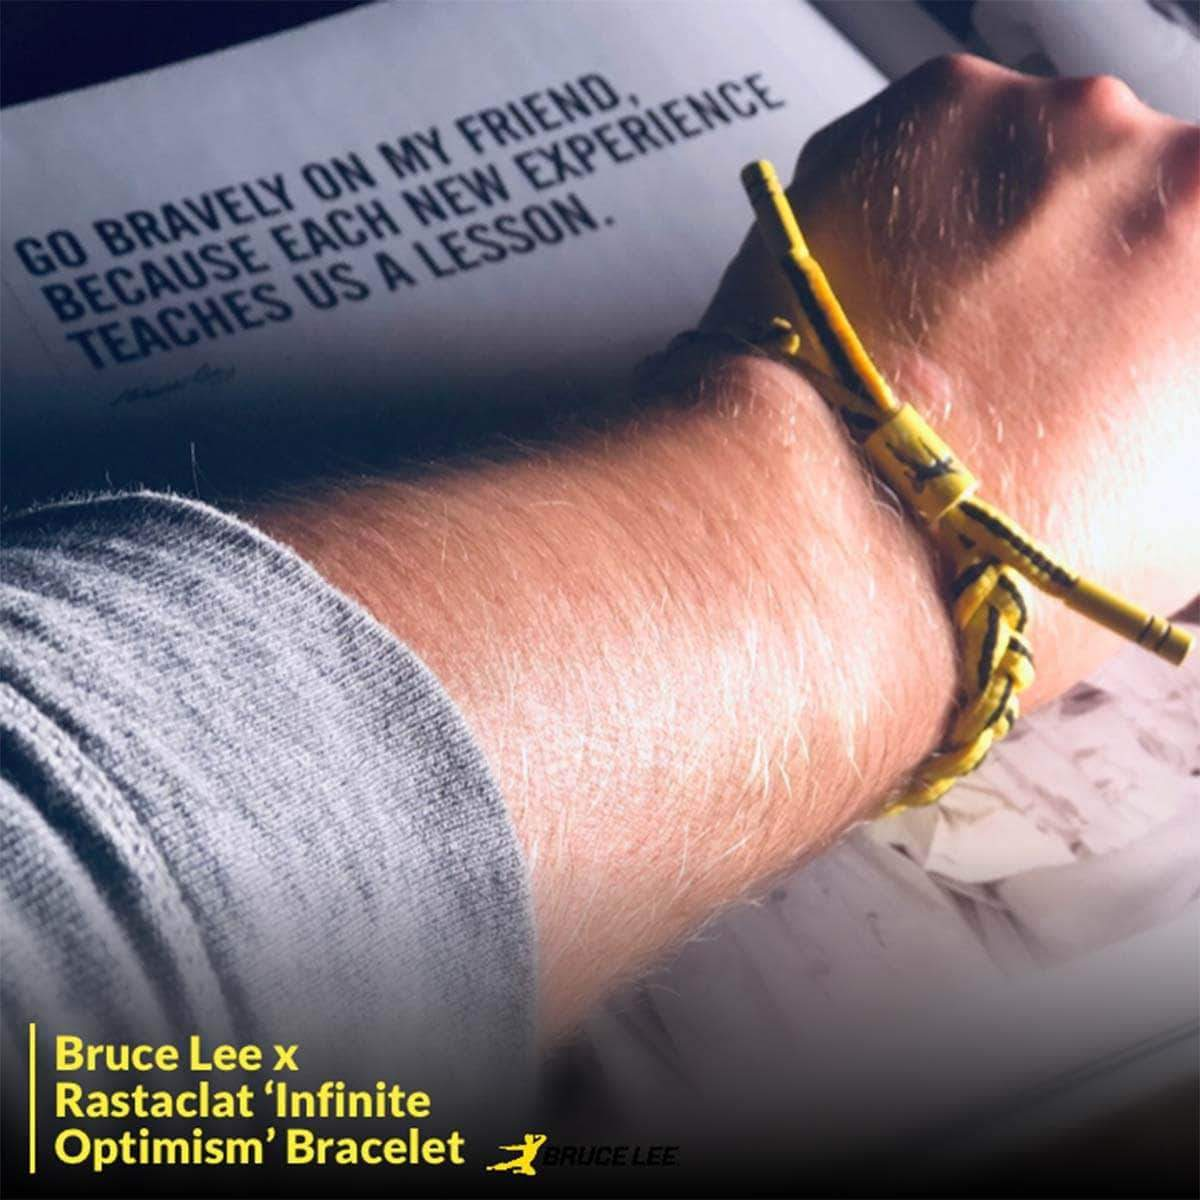 Infinite Optimism Rastaclat Bracelet